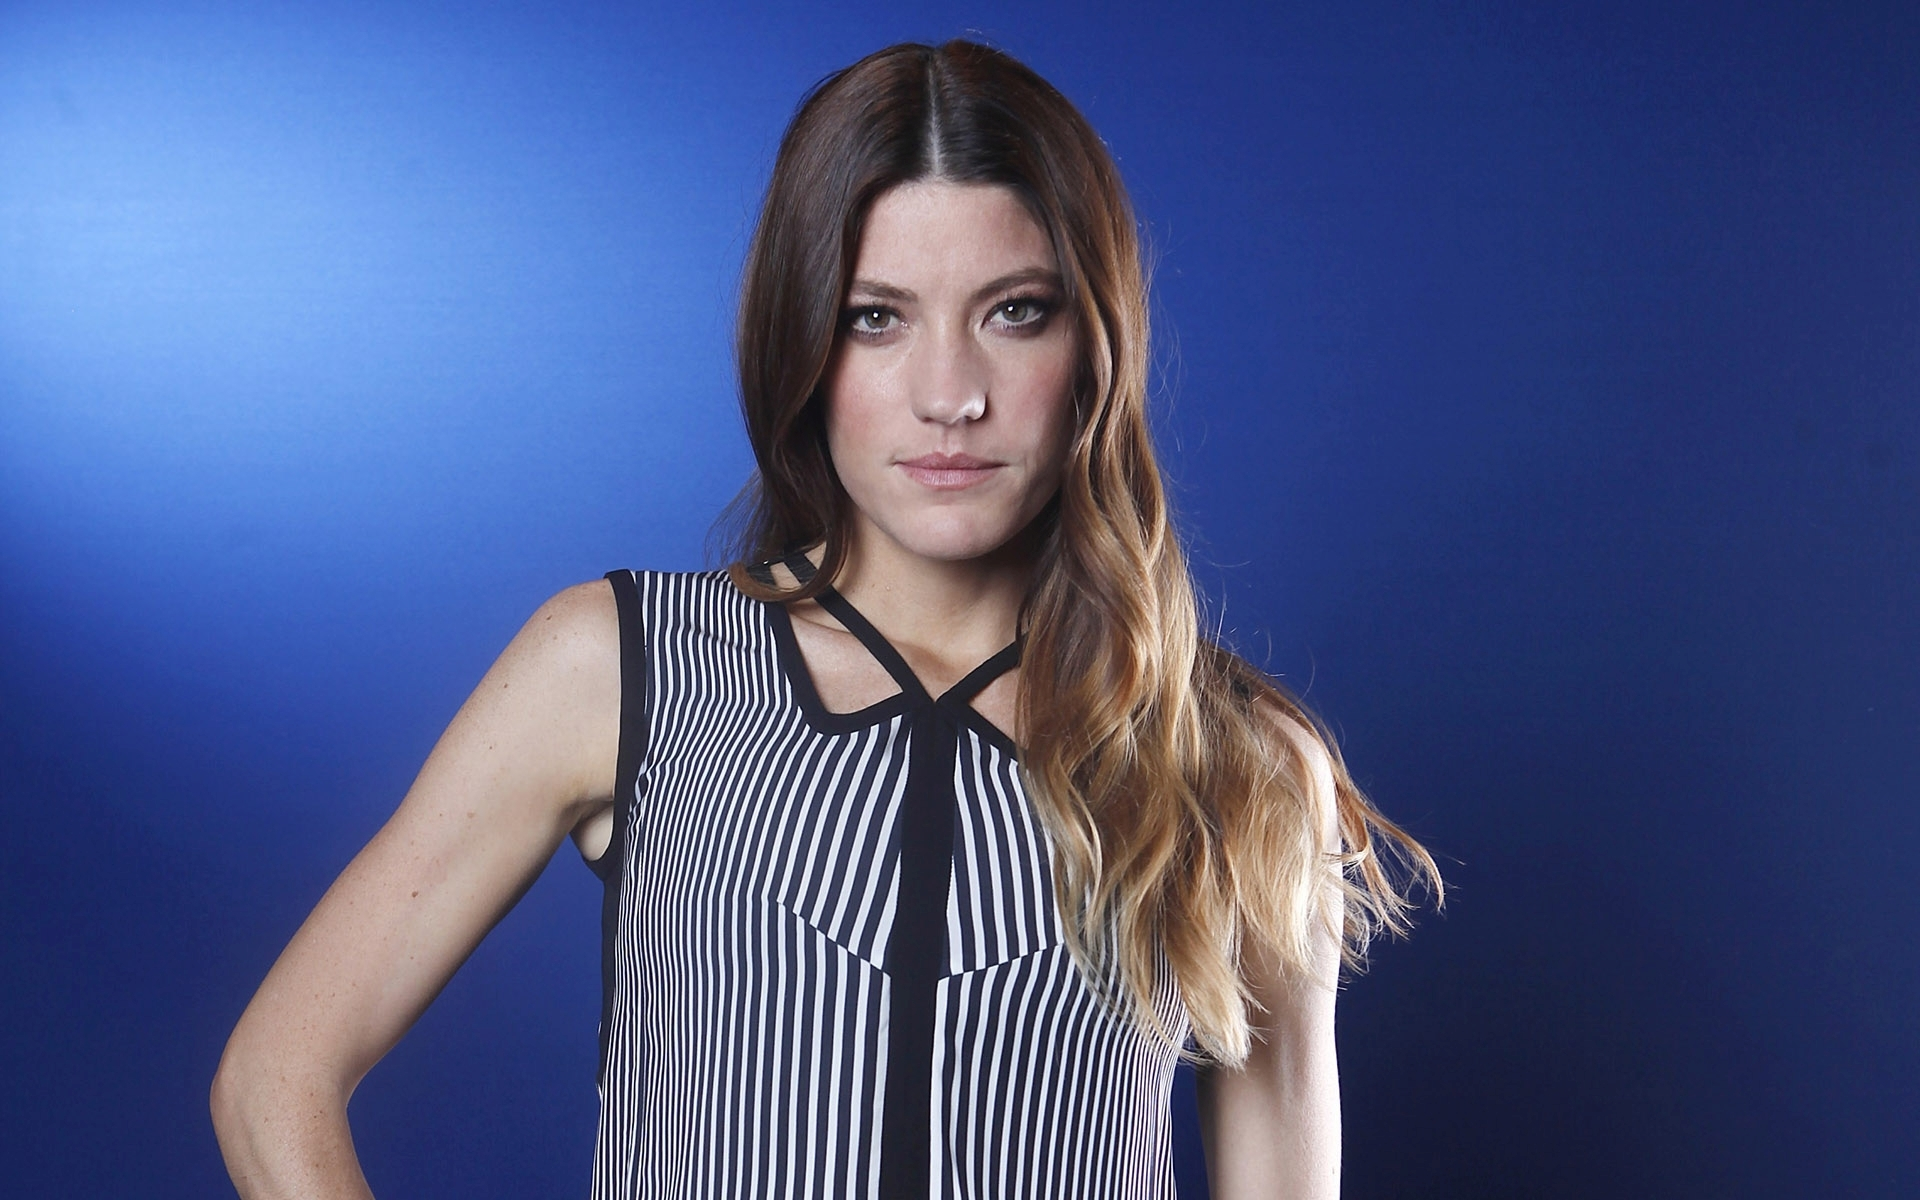 Jennifer Carpenter Wallpapers High Resolution And Quality